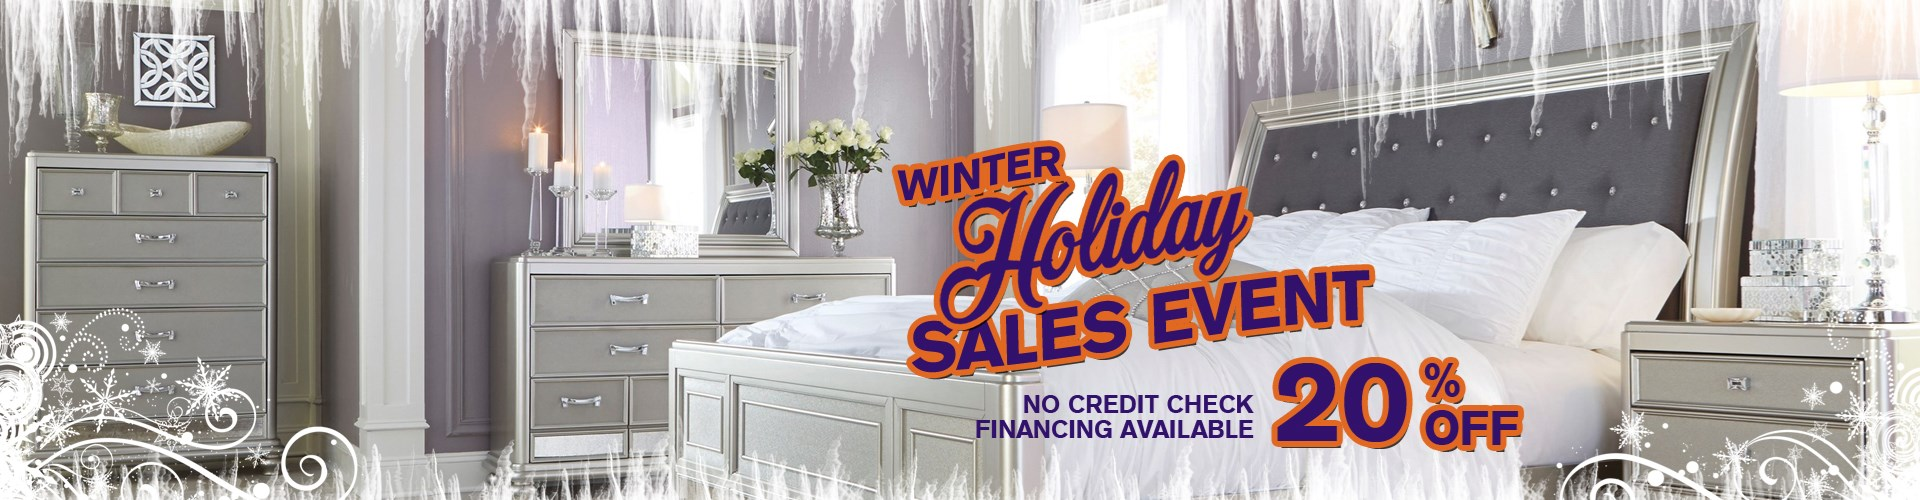 Winter Holiday Sales Event